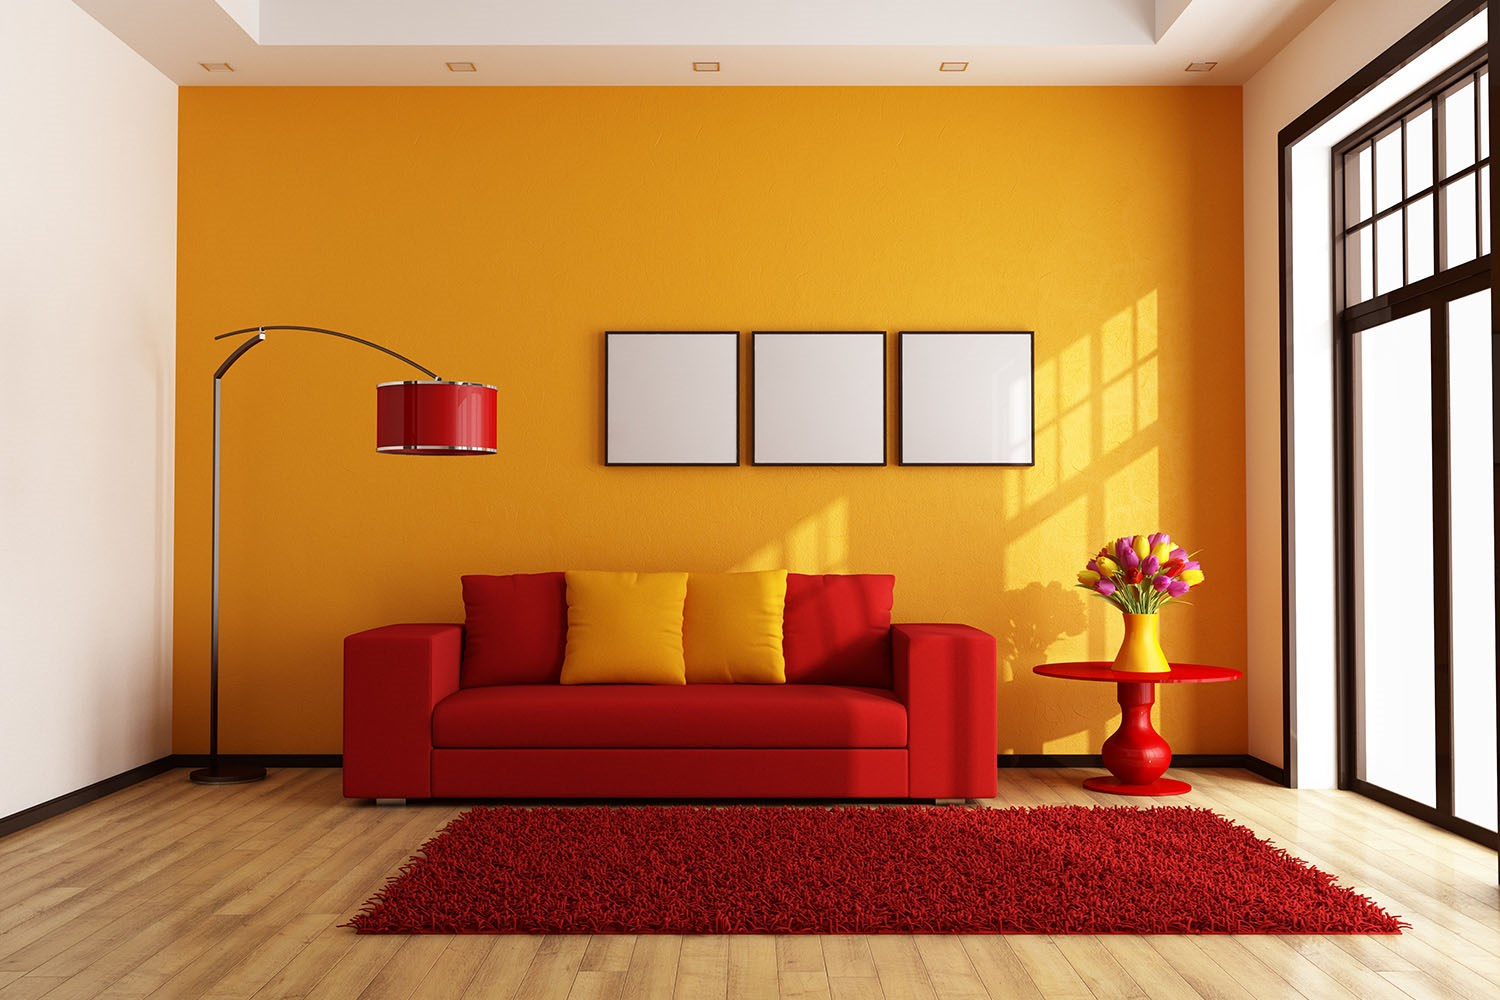 Colours That Go with Red - The Best Red Colour Combinations | Better ...